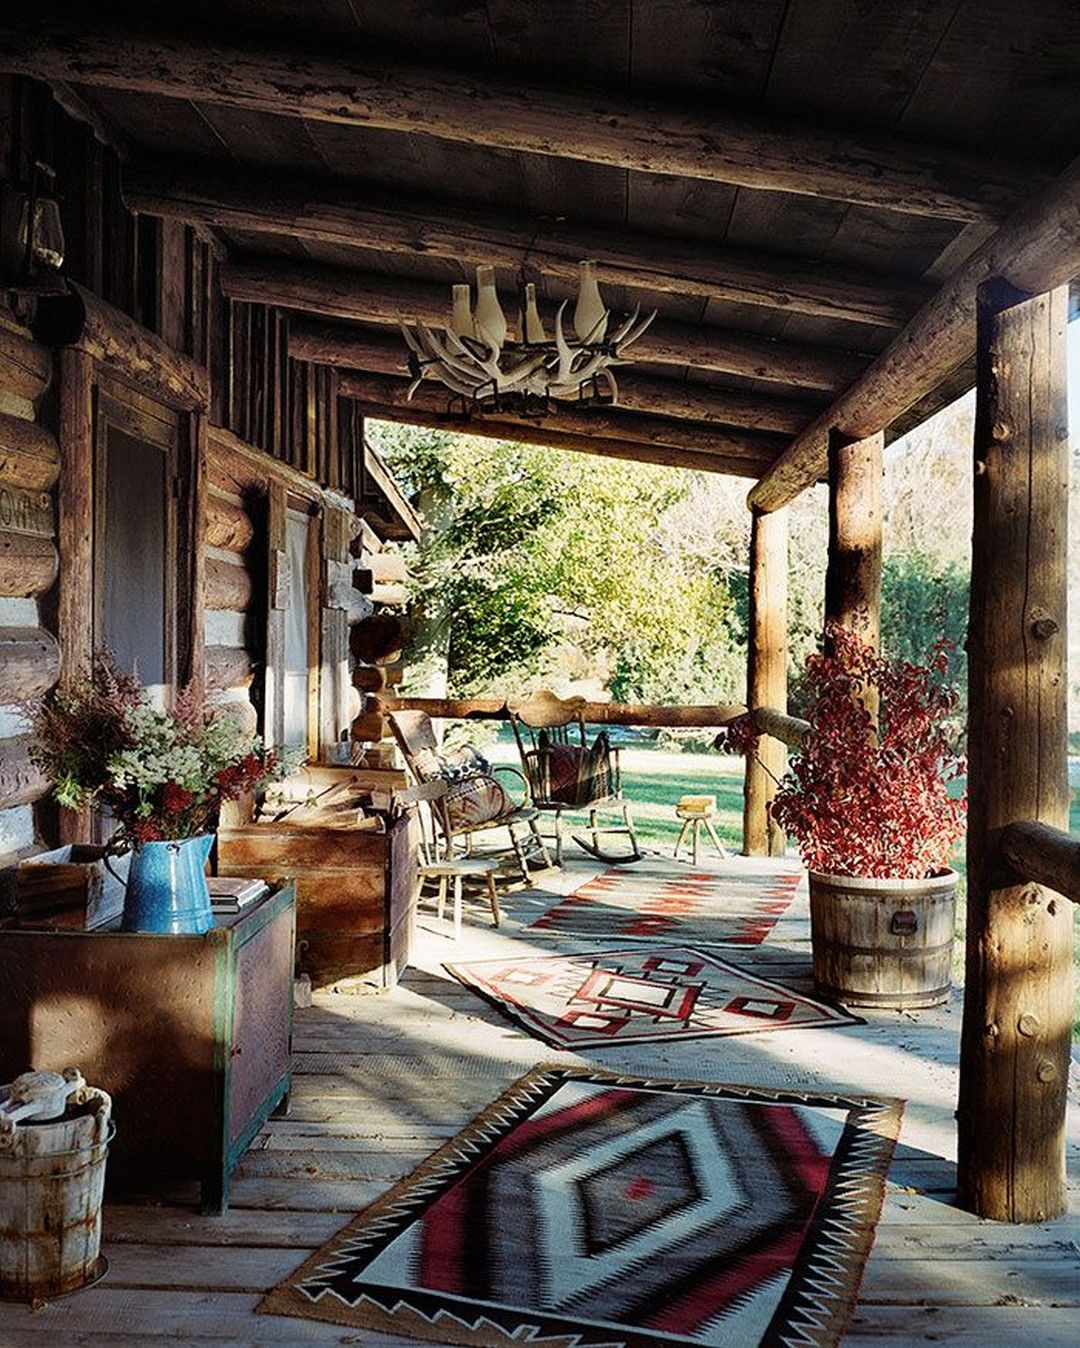 30 Cozy Home Decor Ideas For Your Home: 29 Beautiful Rustic Porch Decor Ideas For Your Home